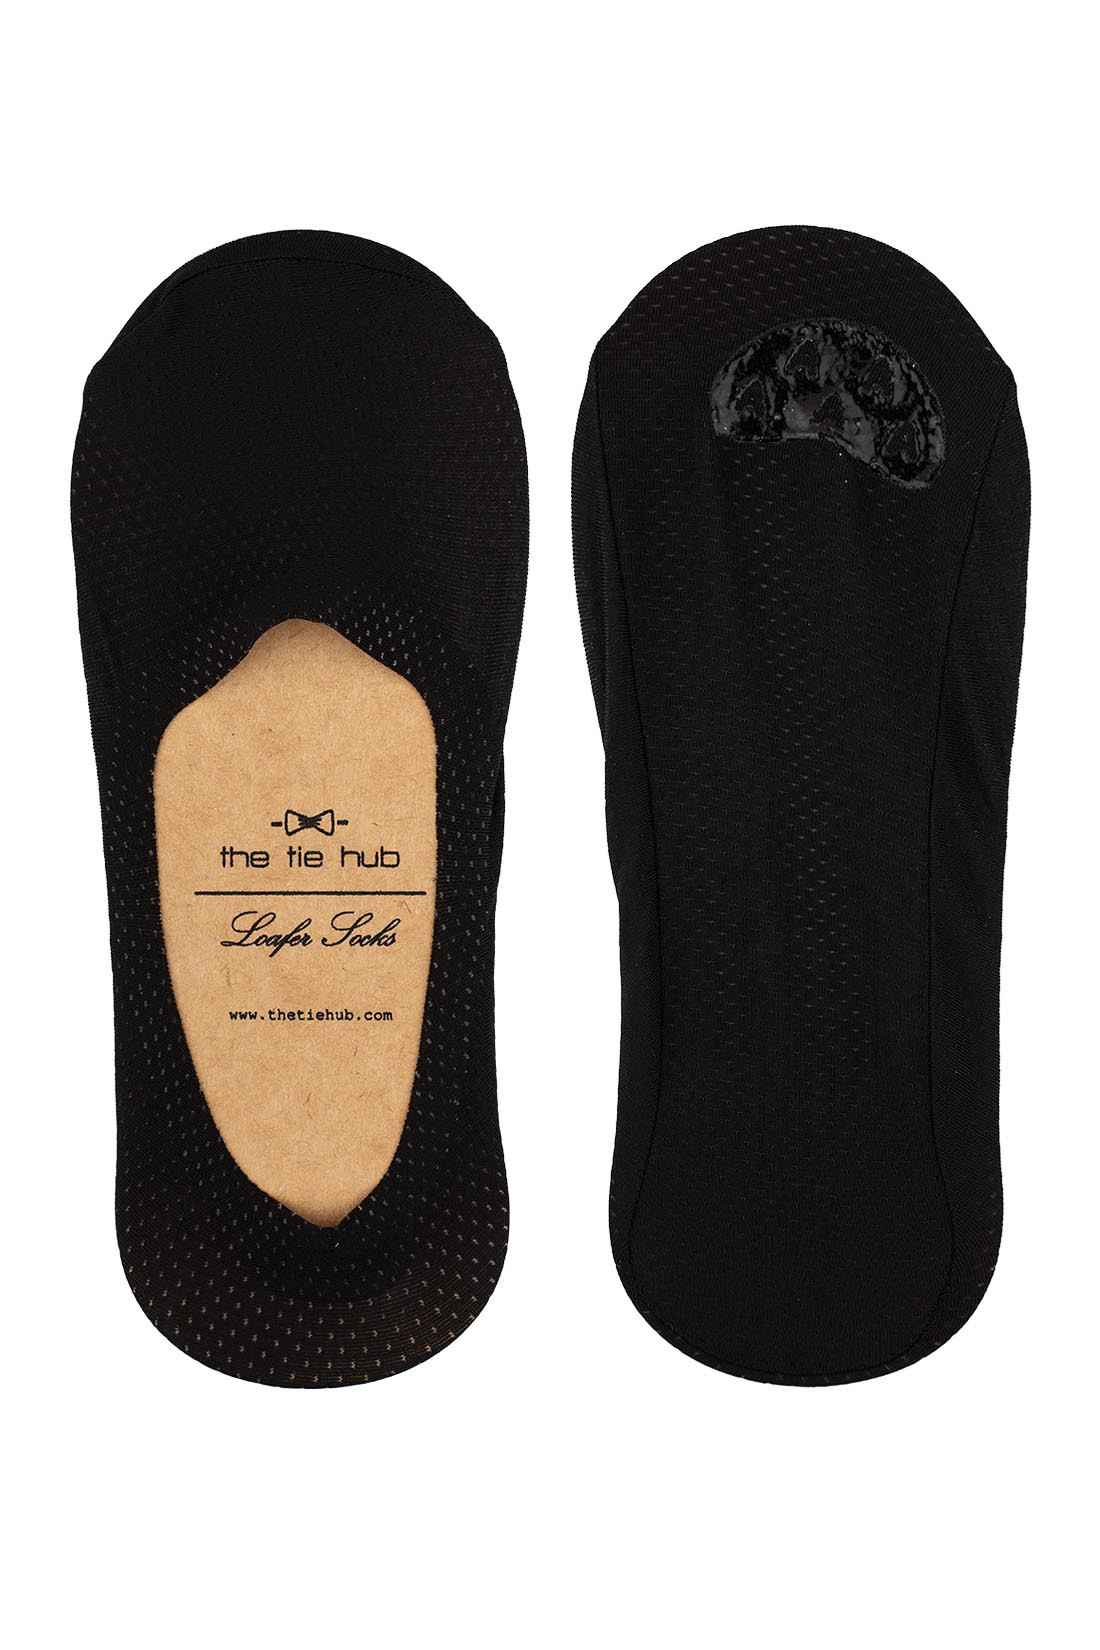 Breathable Black Loafer Socks - Silicon lining